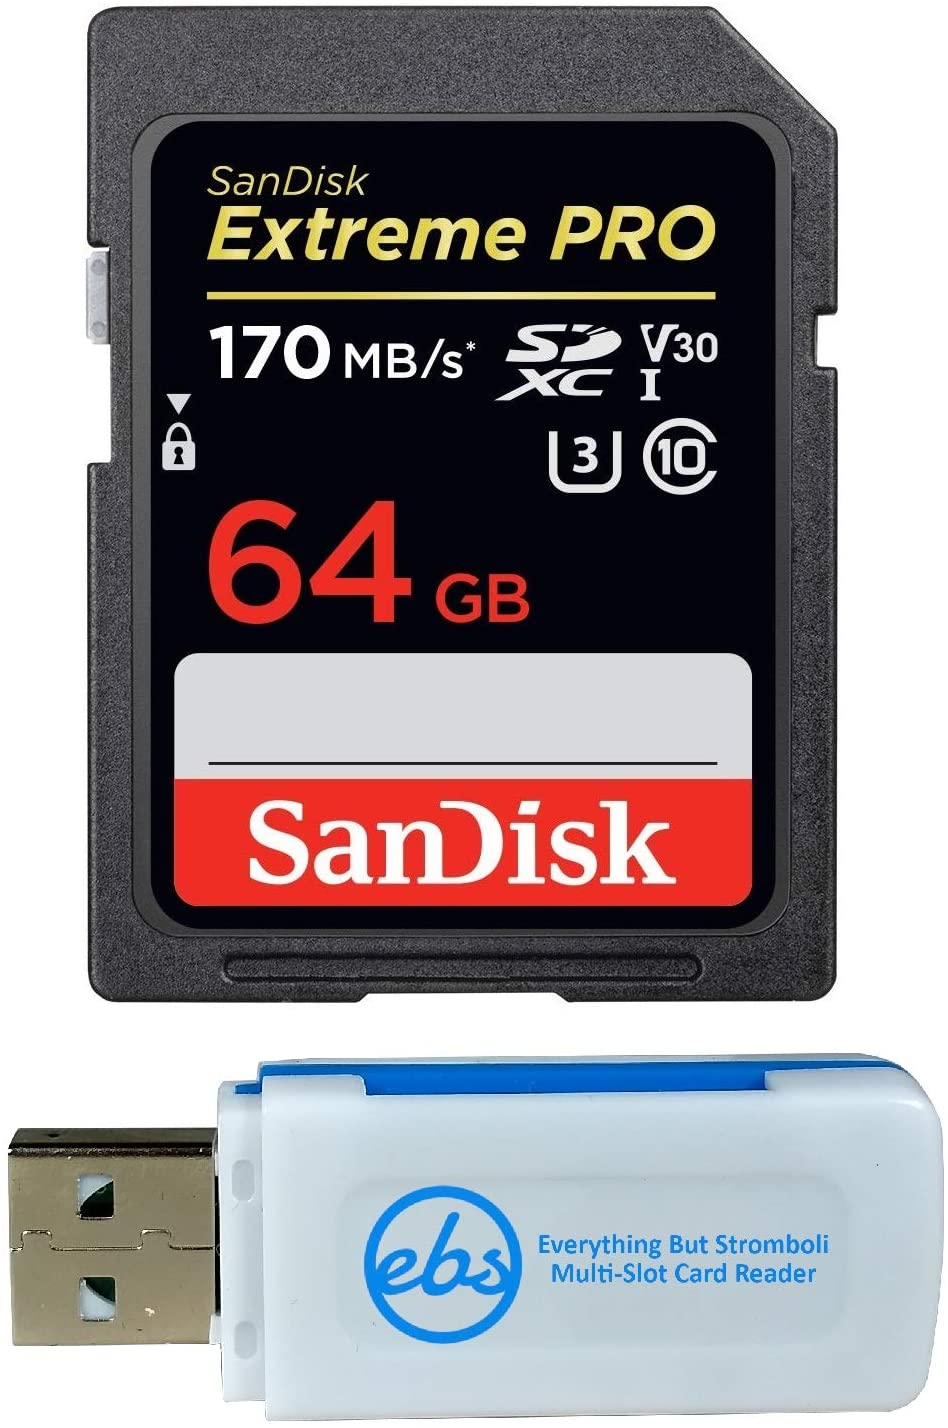 SanDisk Extreme Pro 64GB SD Card for Camera Works with Nikon Z7 II (Z 7II), Z6 II (Z 6II) - SDXC UHS-I Card (SDSDXXY-064G-GN4IN) Bundle with (1) Everything But Stromboli Micro & SD Memory Card Reader